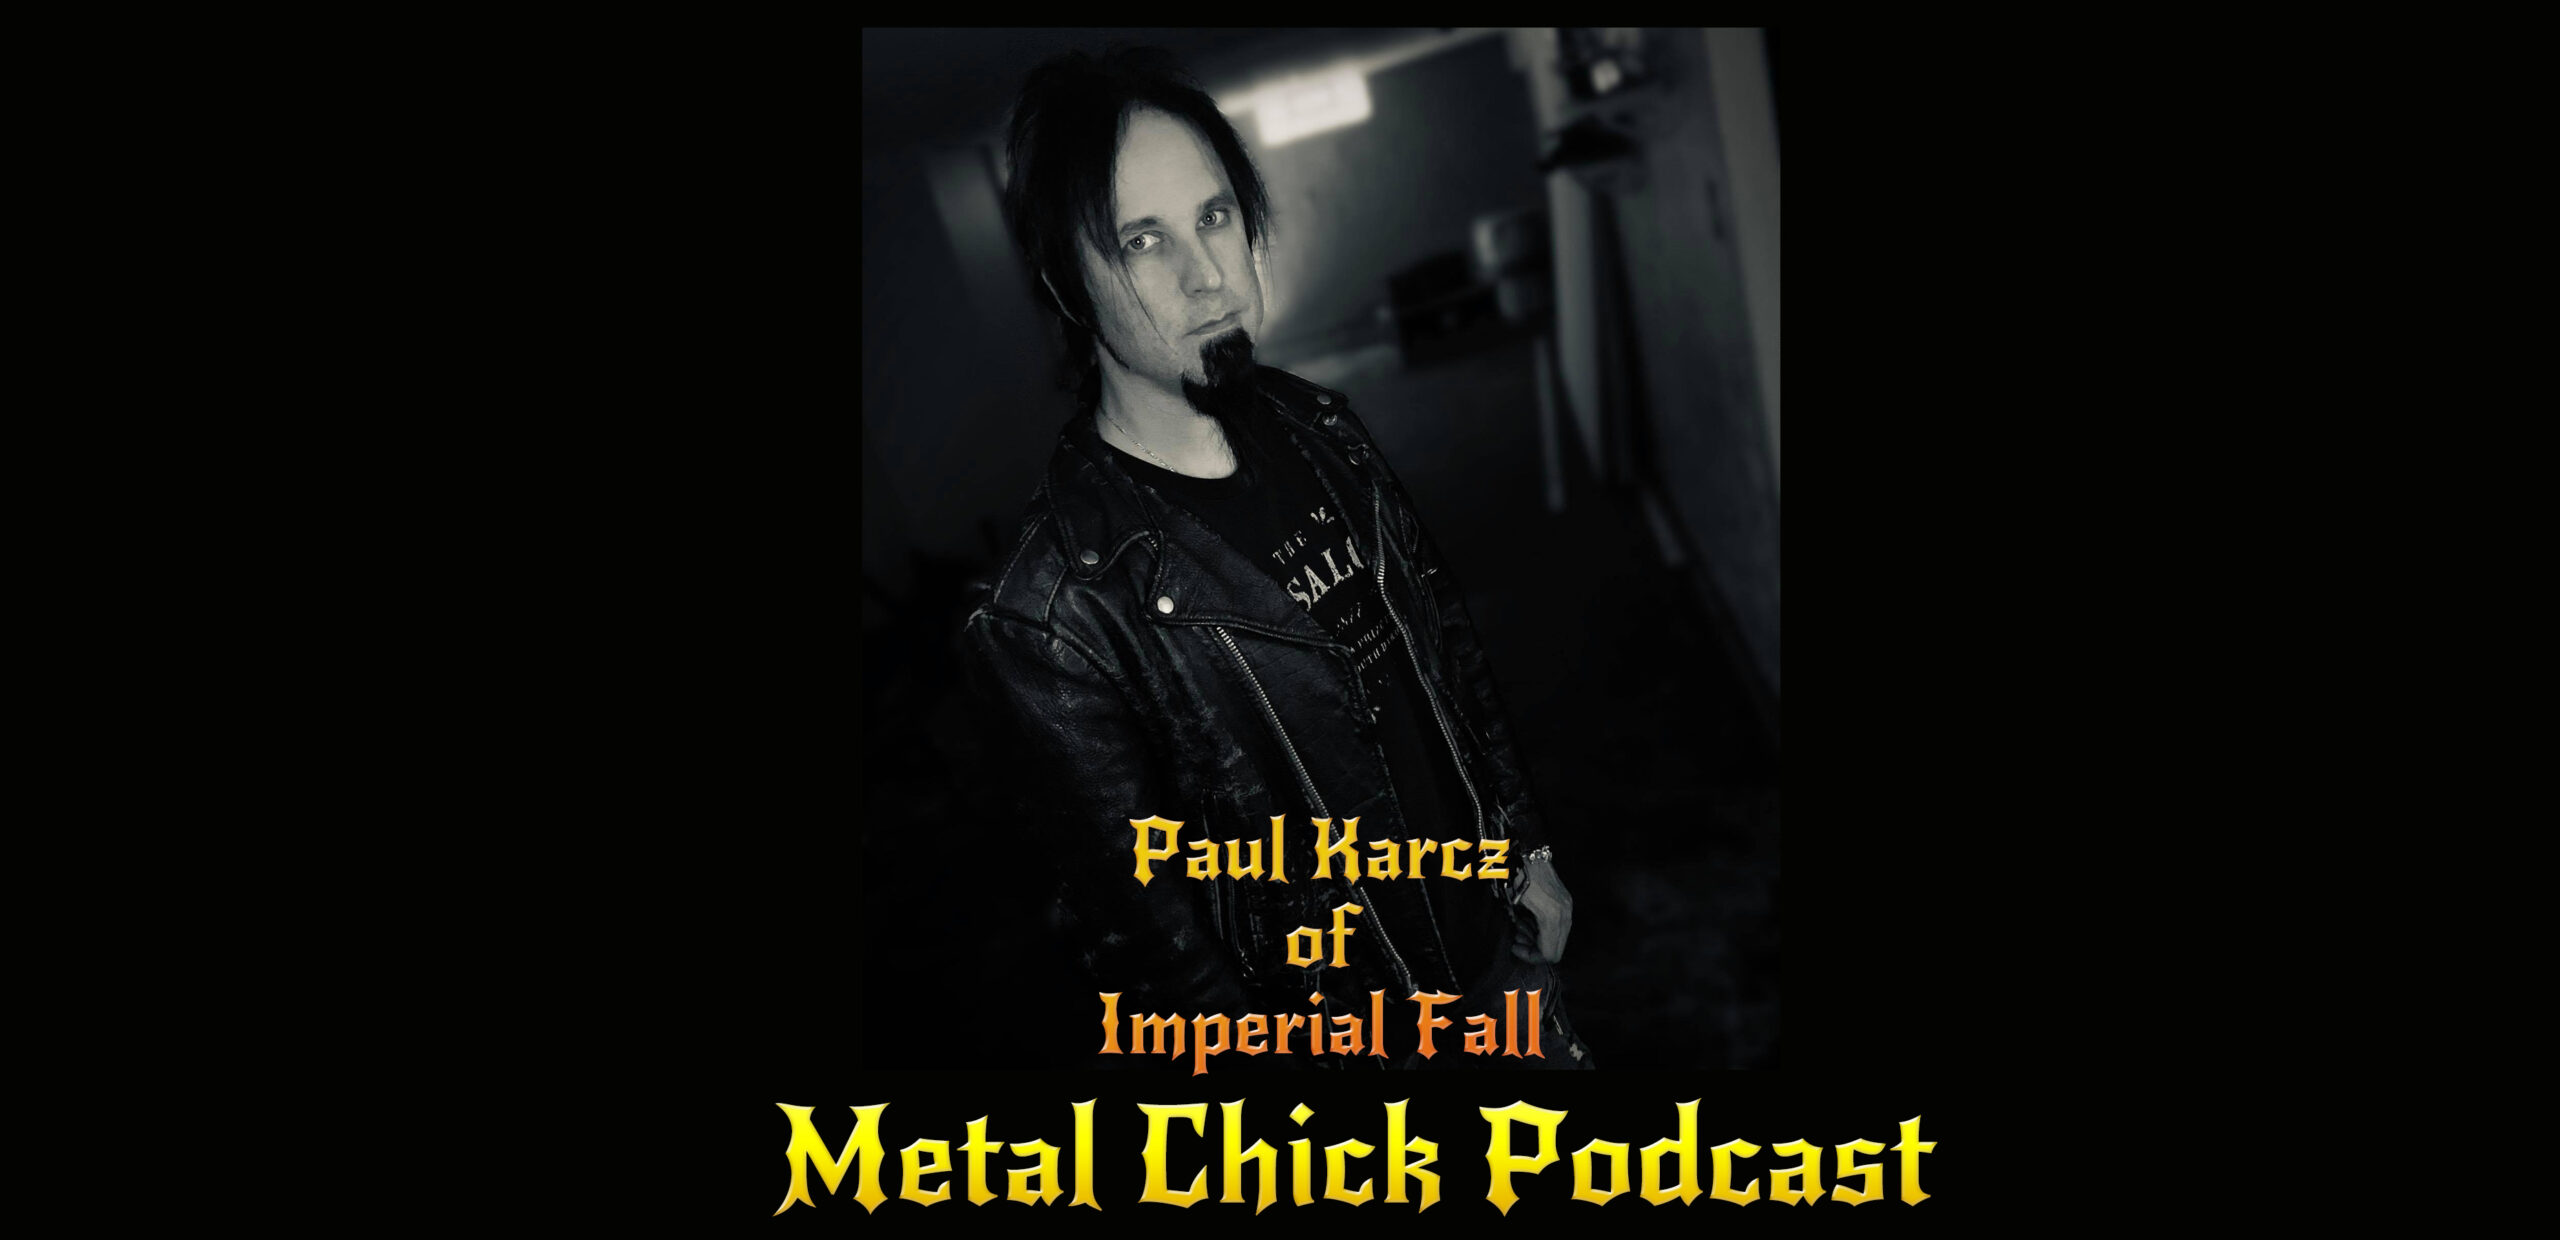 Metal Chick Podcast Ep064 Paul Karcz Lead Singer of Imperial Fall